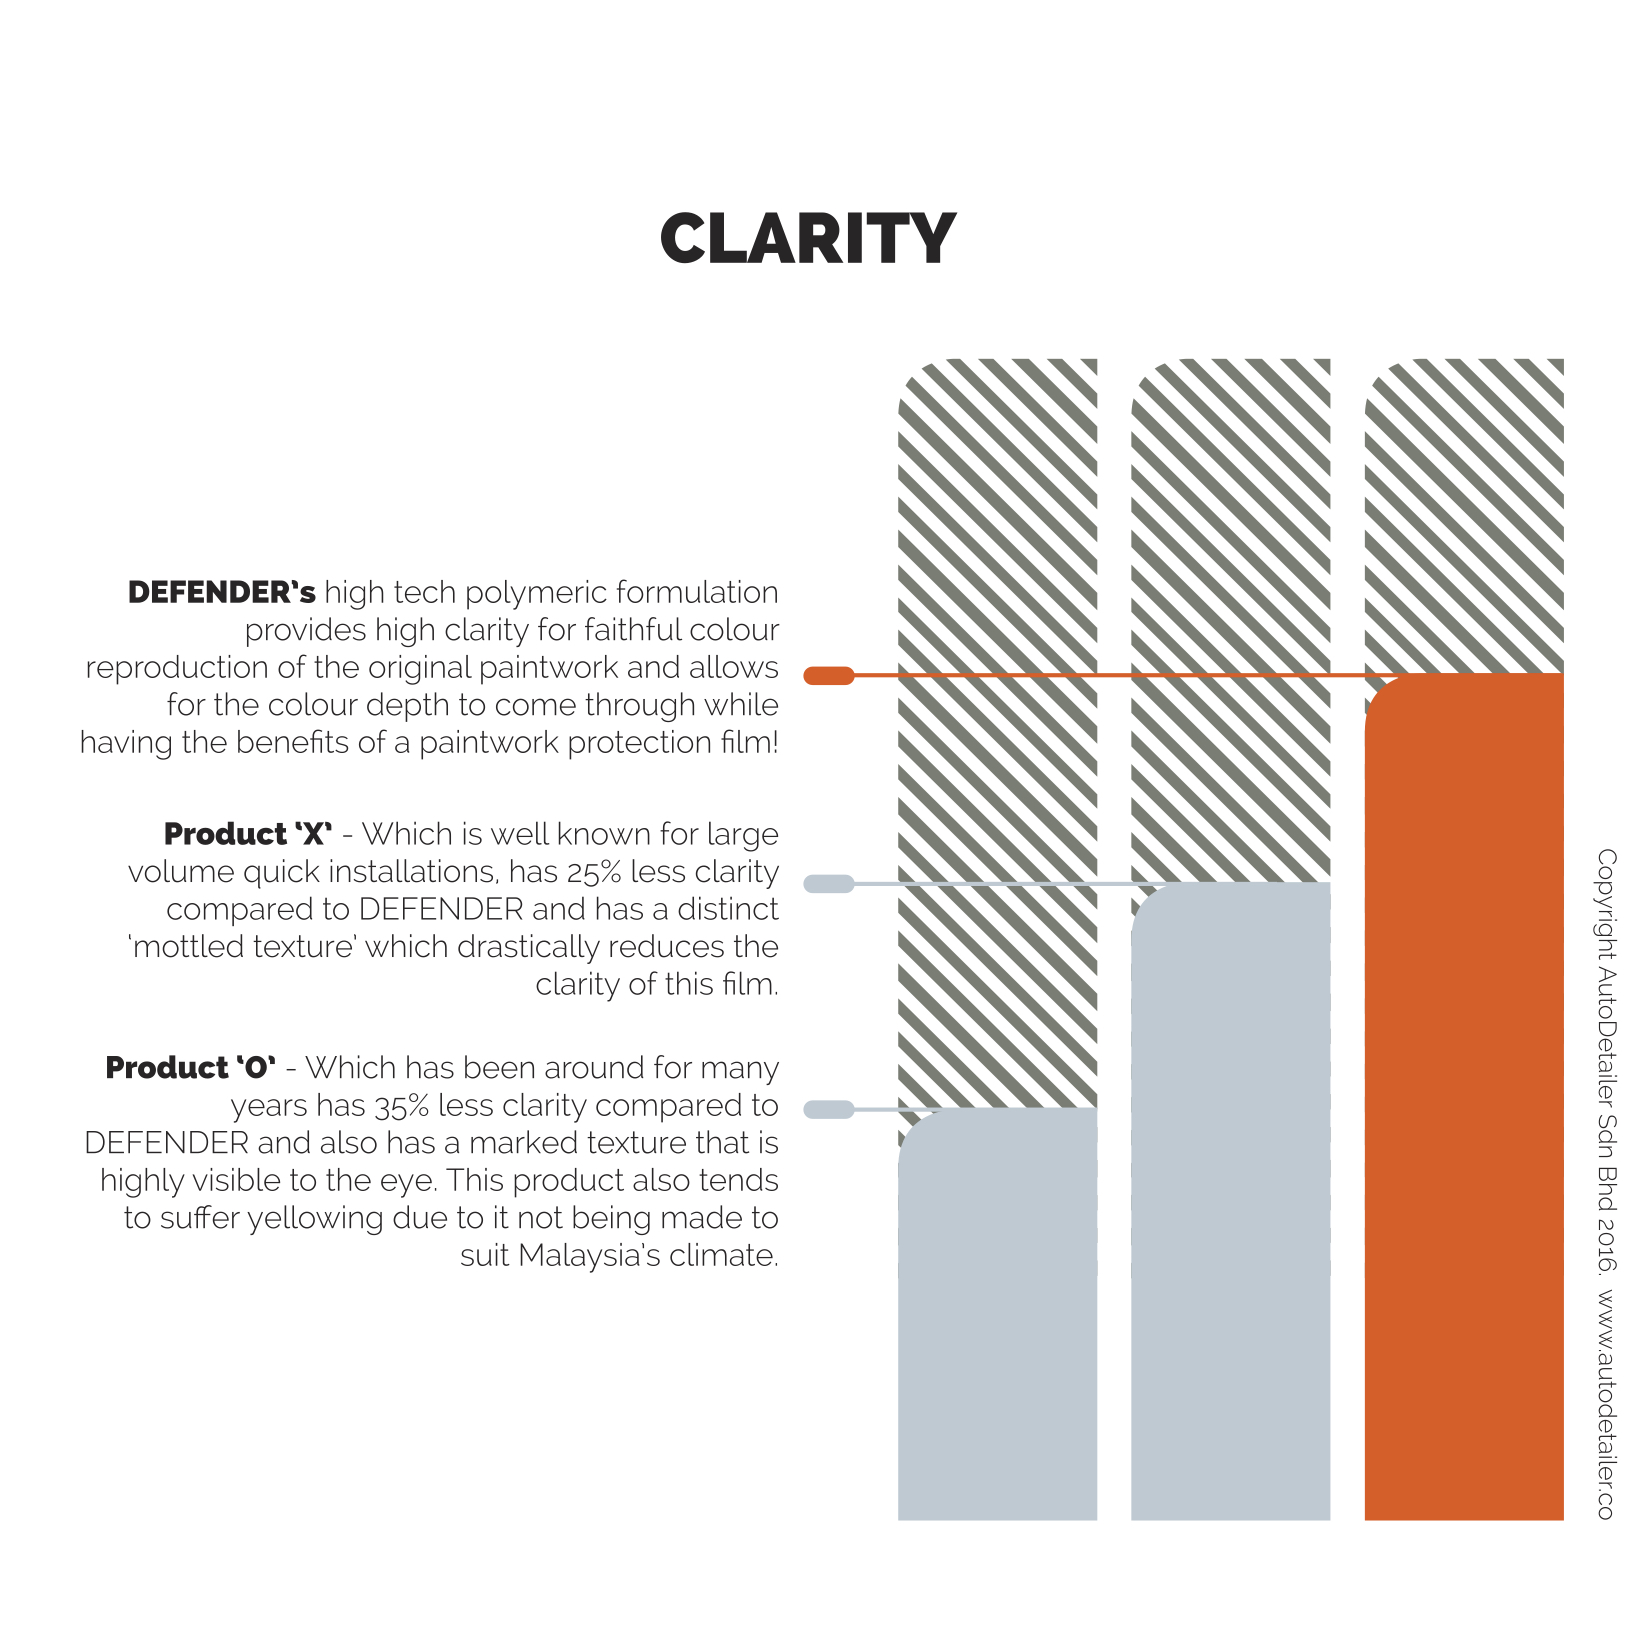 Defender infographic CLARITY